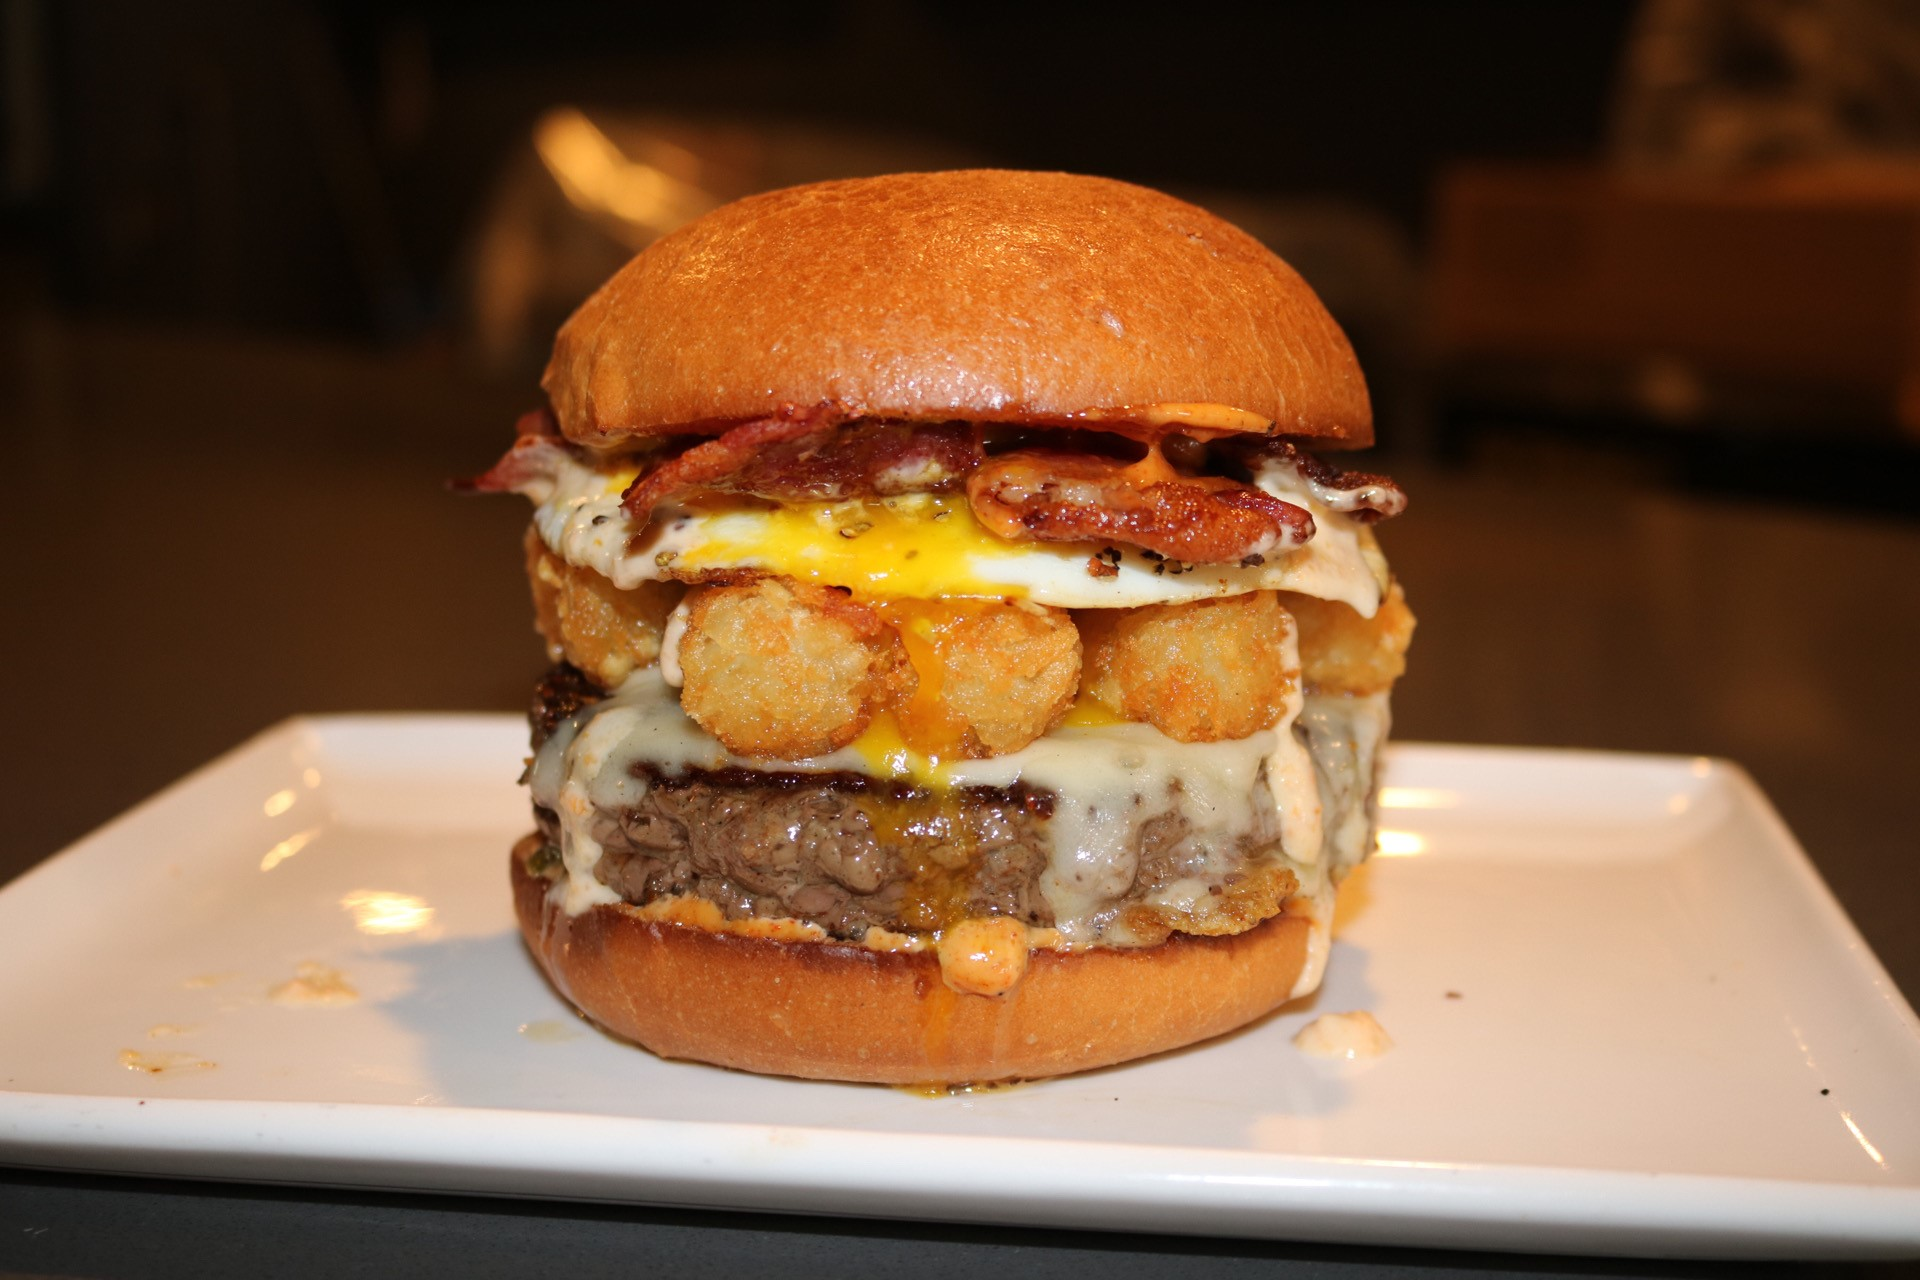 The Sunday Morning- cheeseburger with bacon, tater tots. and a fried egg